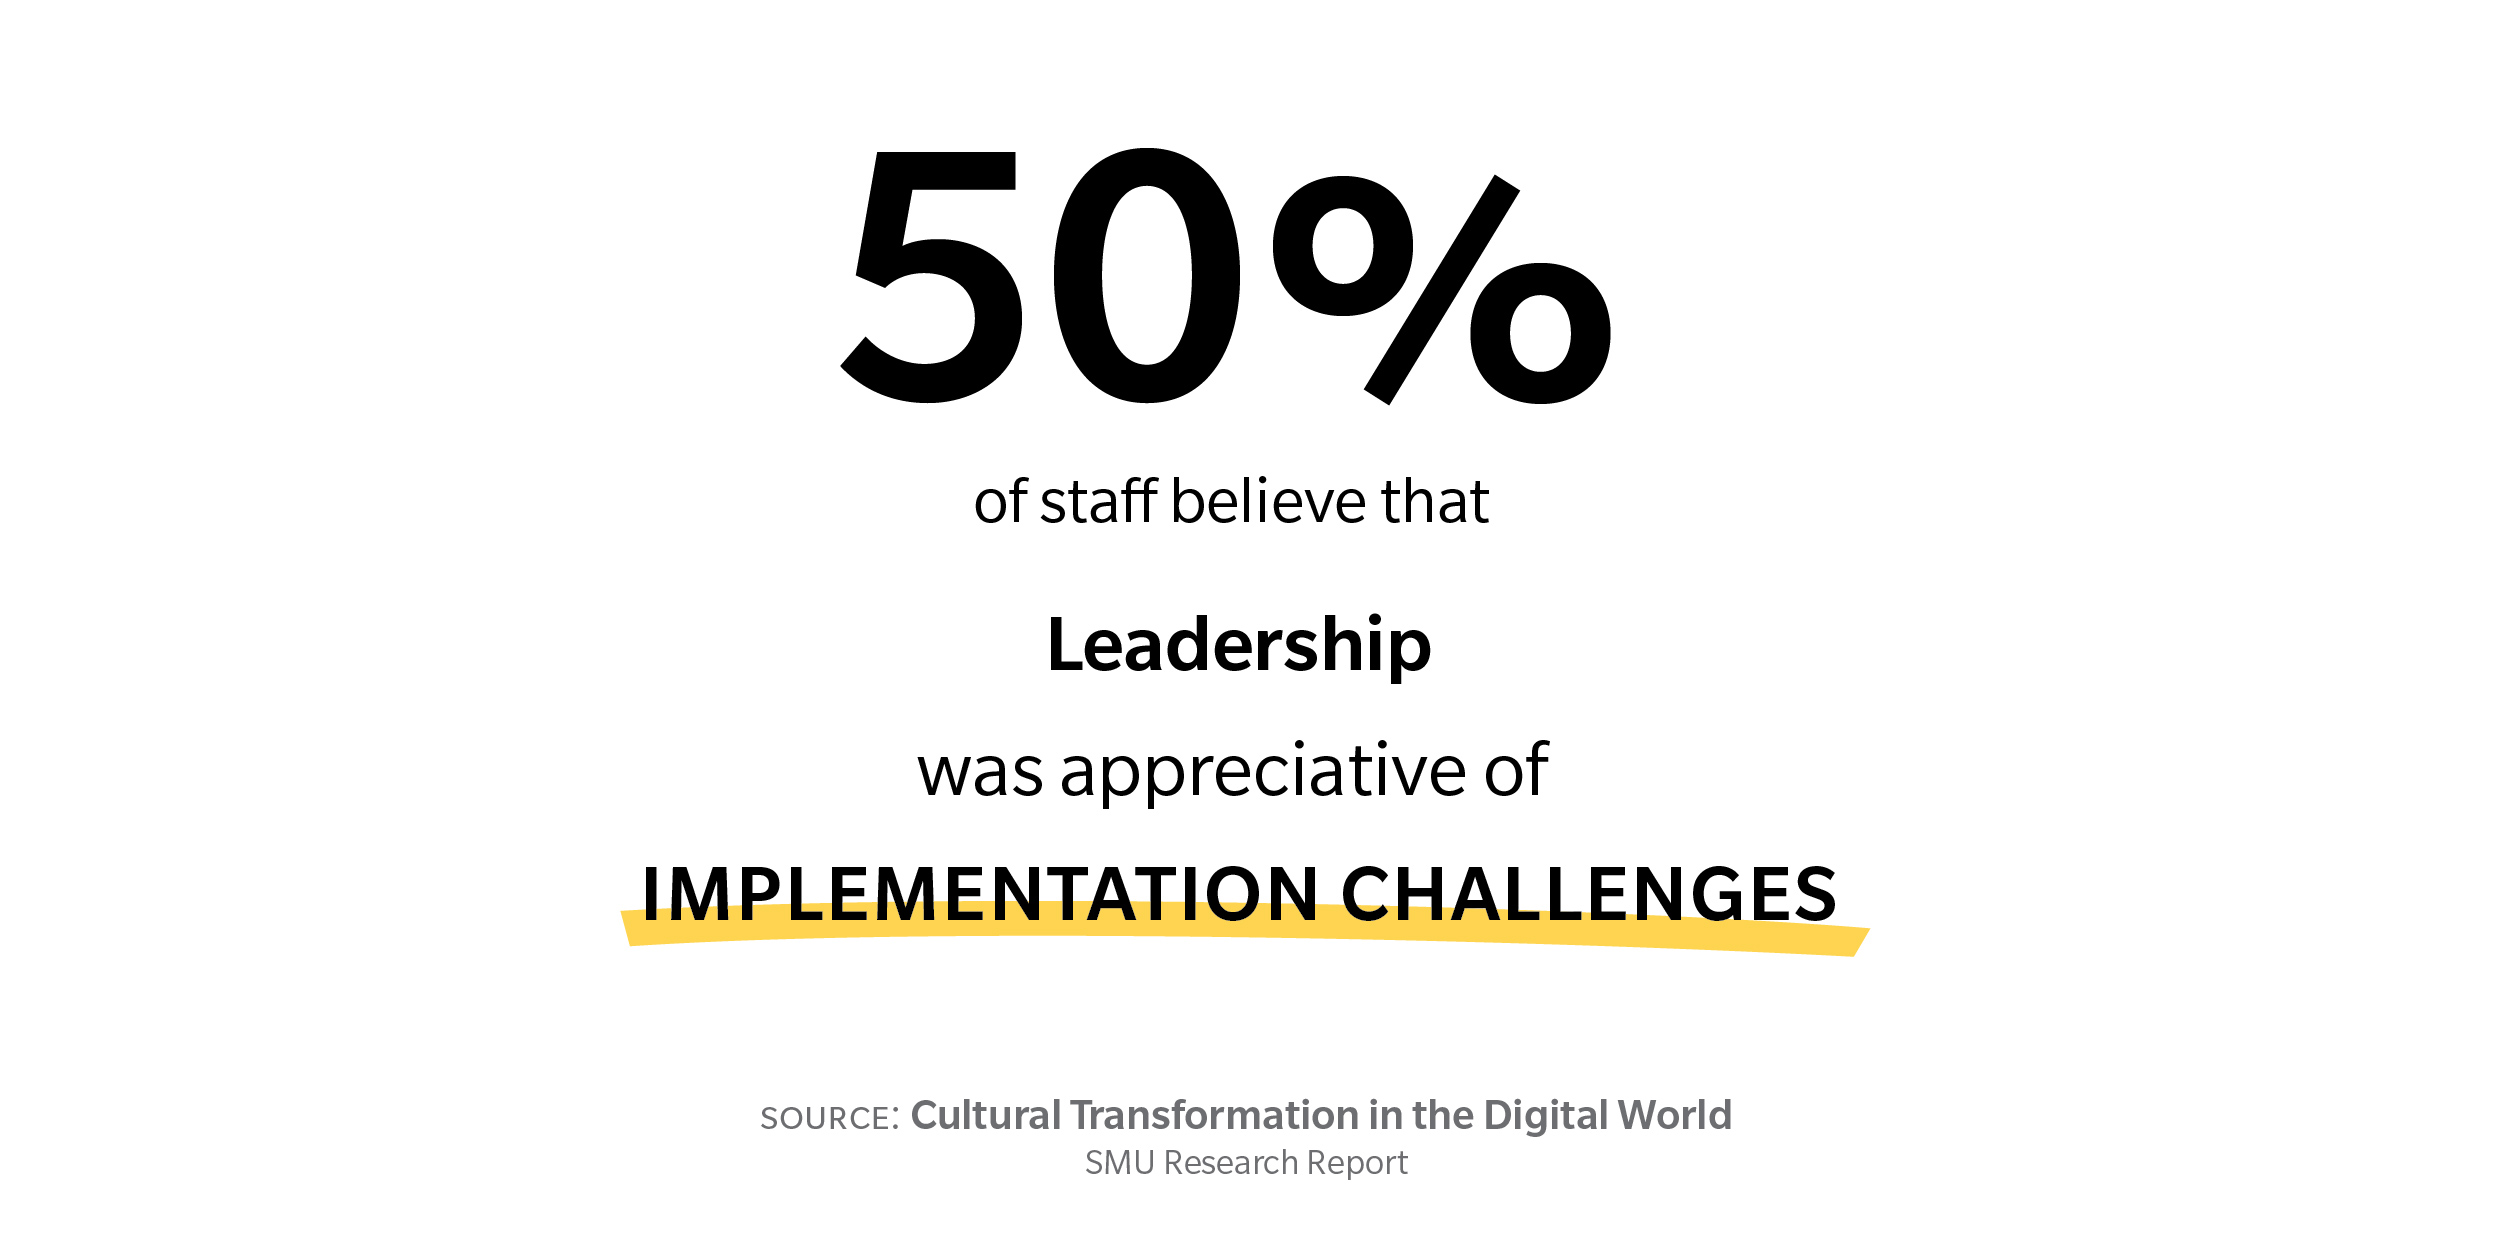 Leadership appreciation of implementation challenges